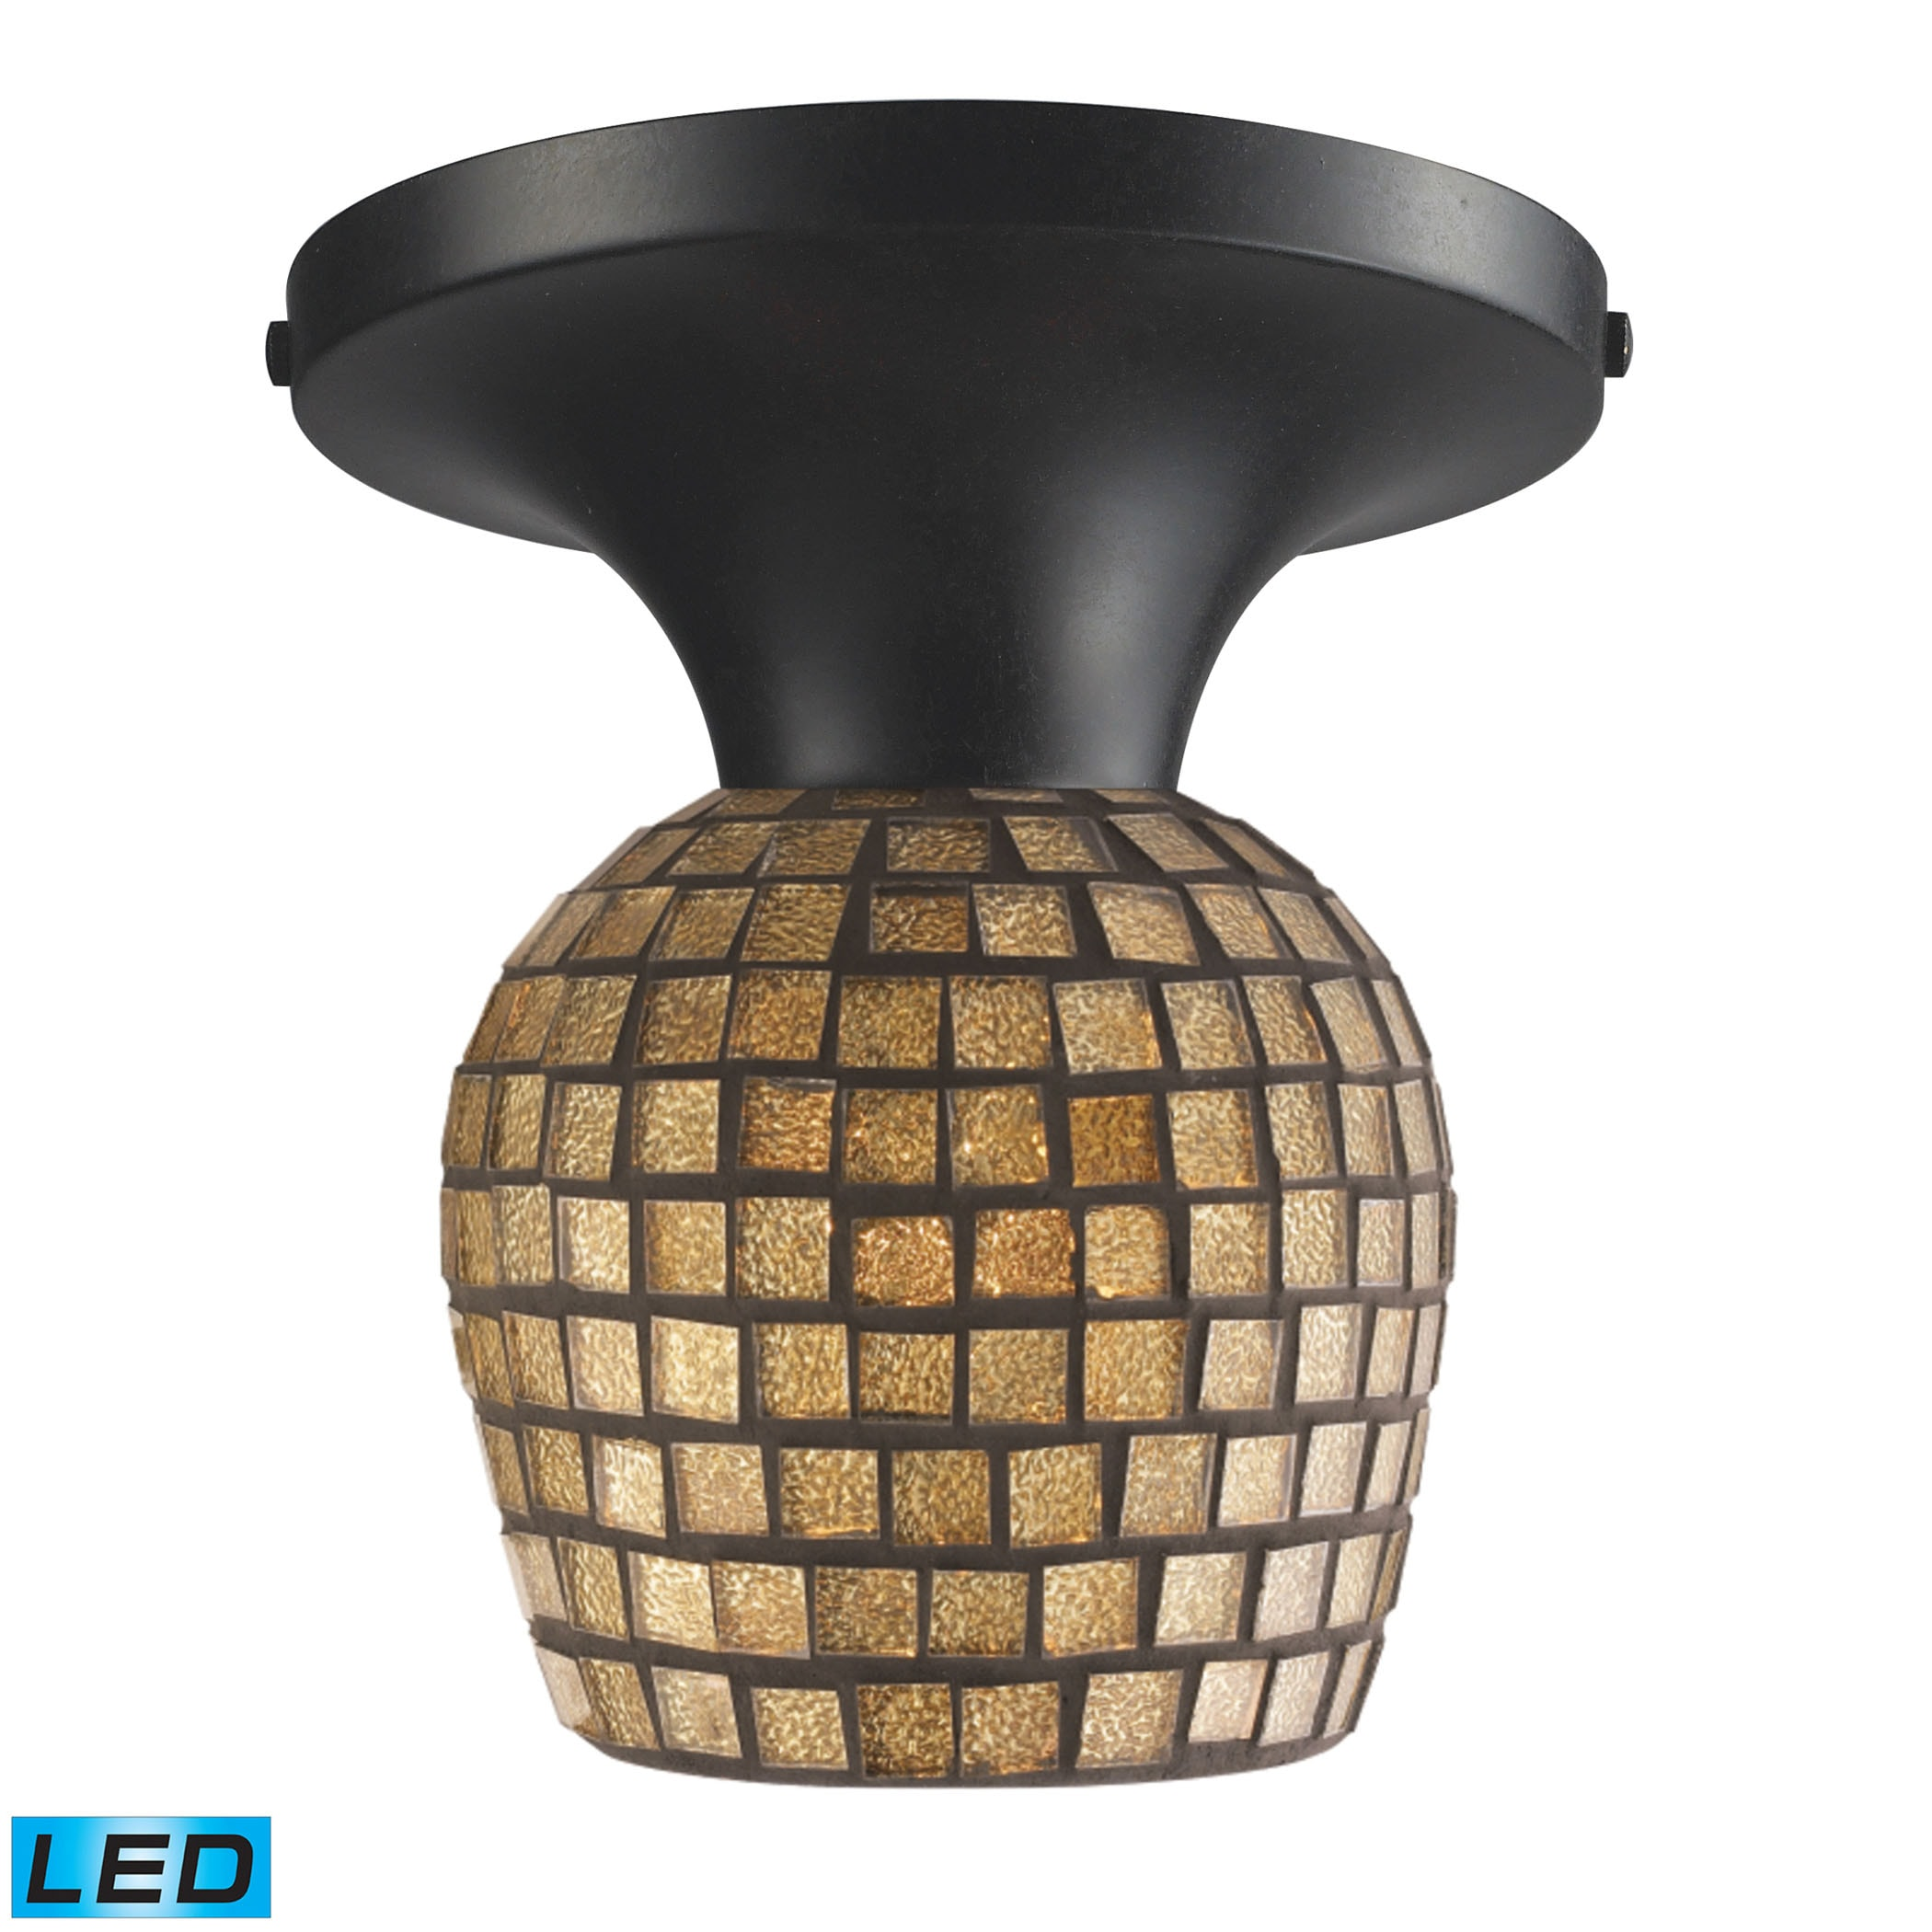 EL-10152/1DR-GLD-LED_Celina 1-Light Semi-Flush in Dark Rust and Gold Leaf Glass - LED Offering Up To 800 Lumens (60 Watt